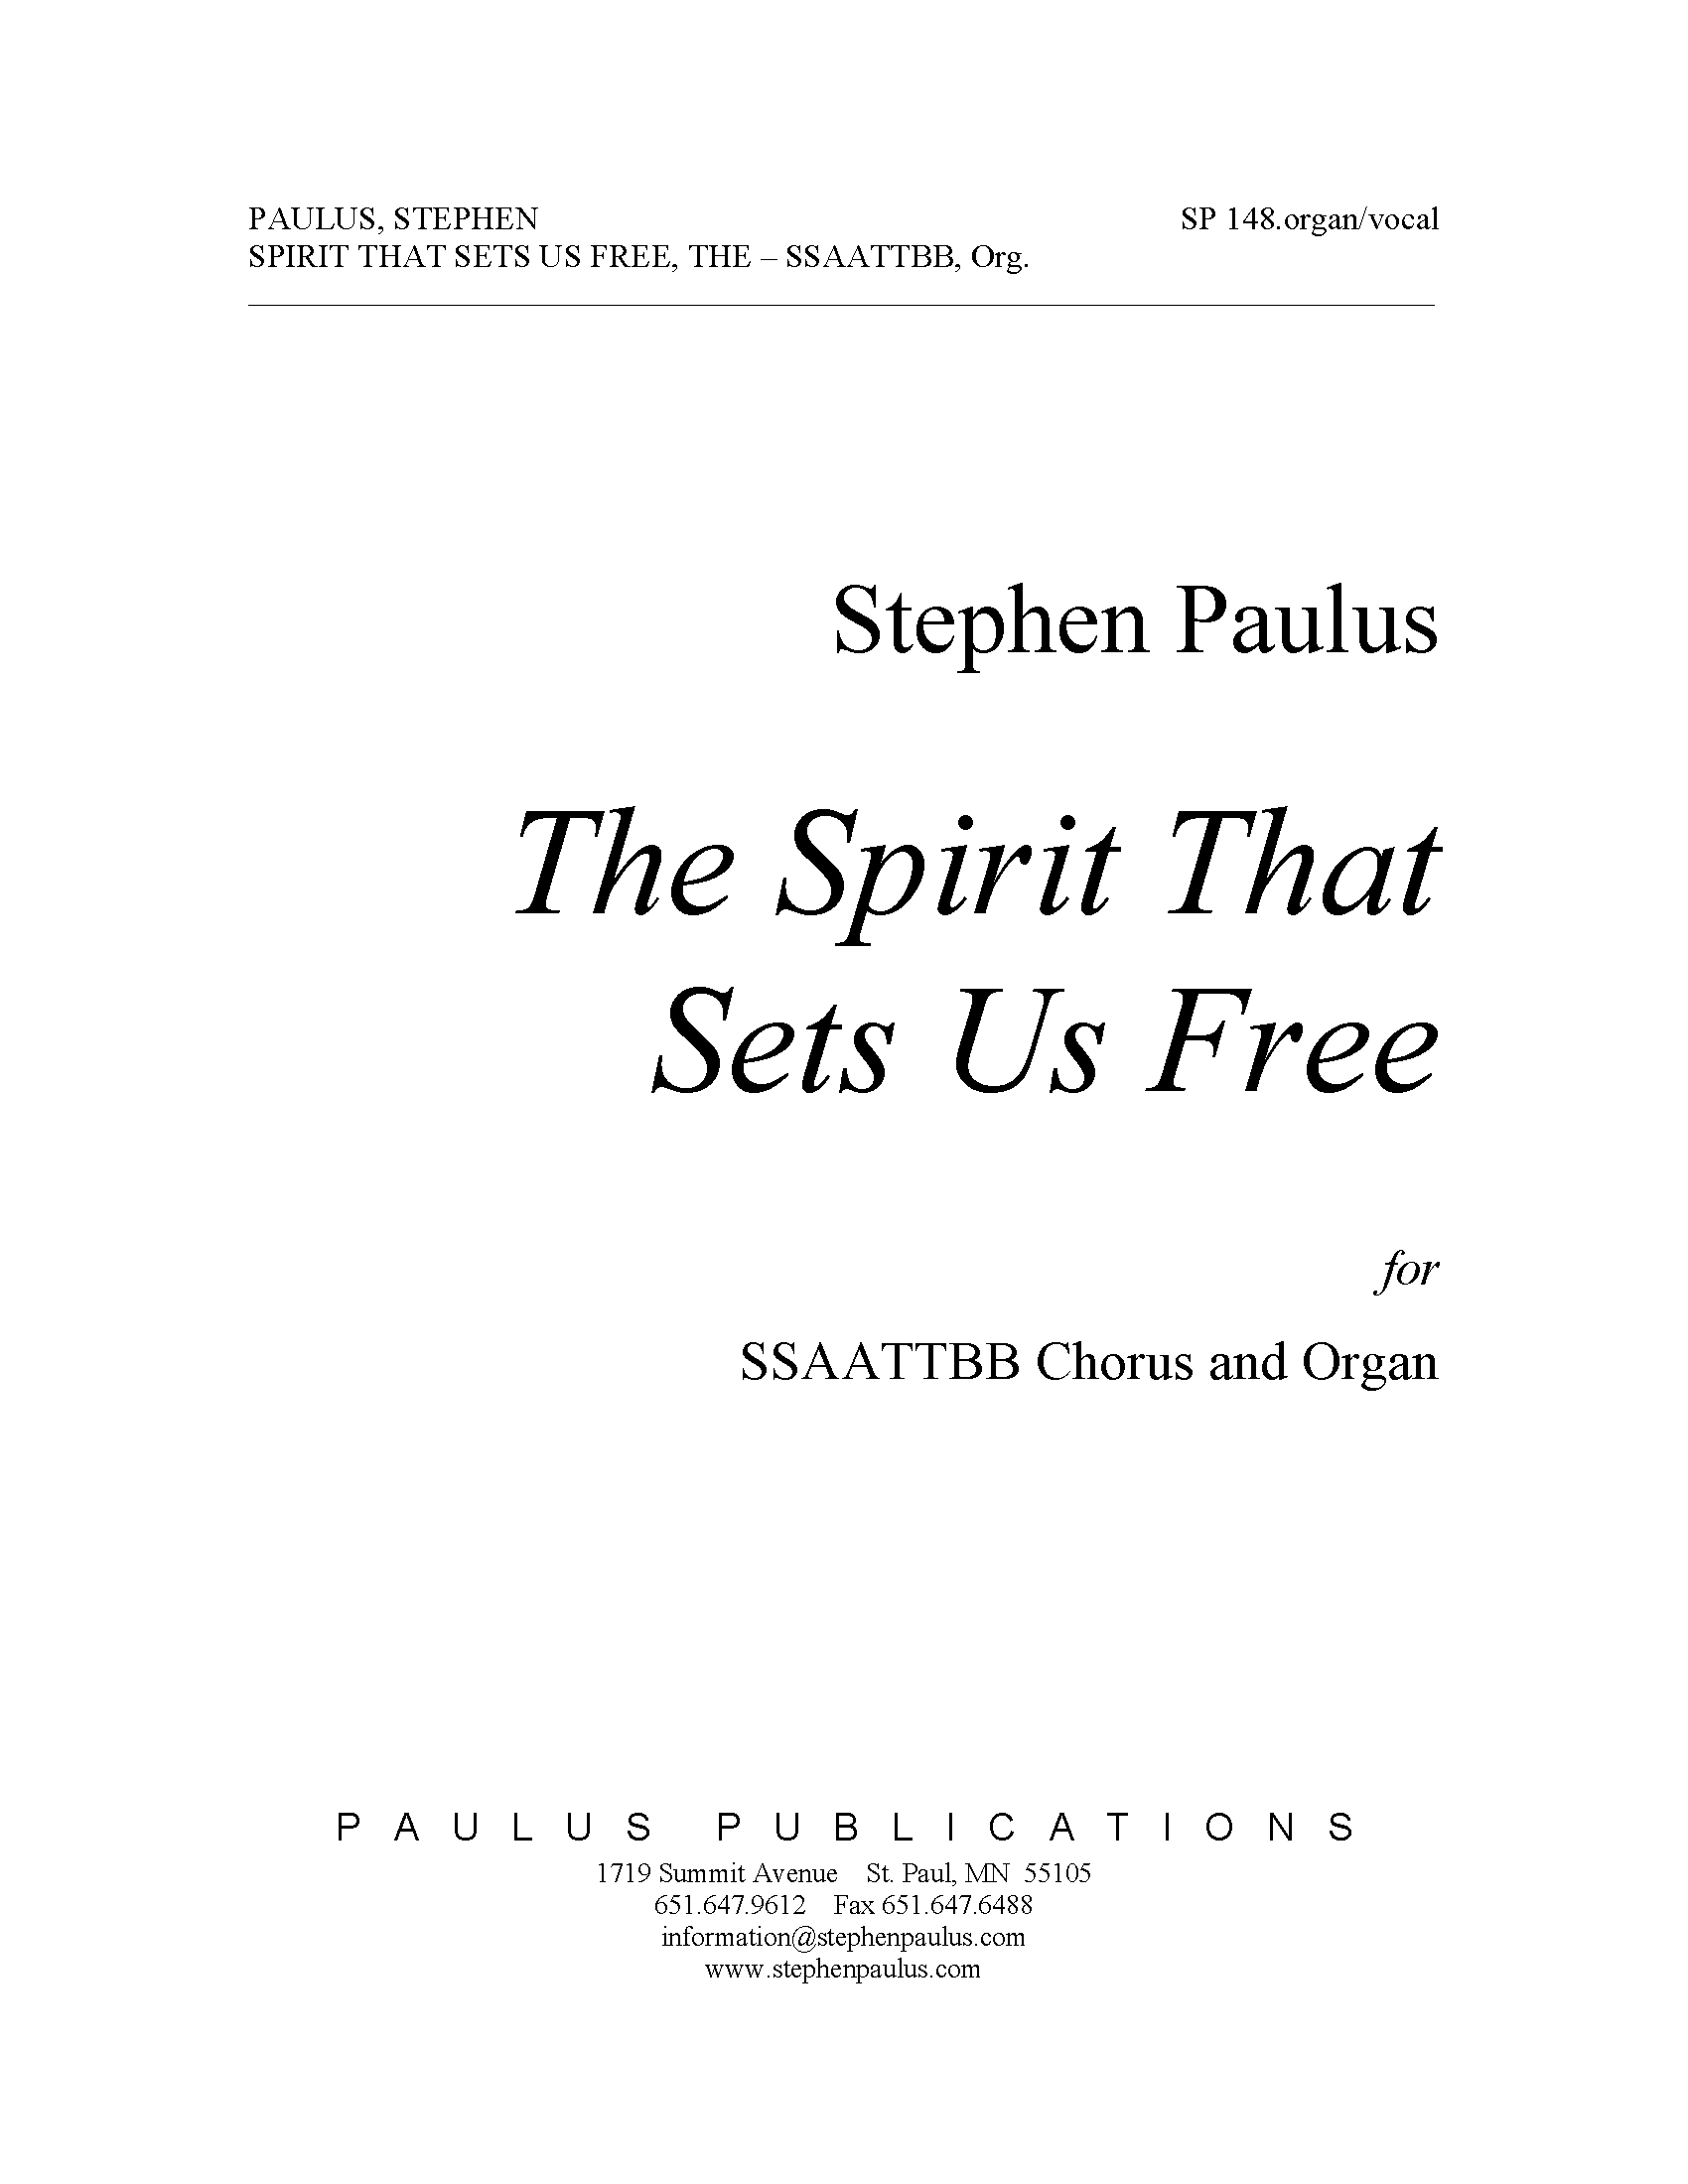 Spirit That Sets Us Free, The for SSAATTBB Chorus & Organ